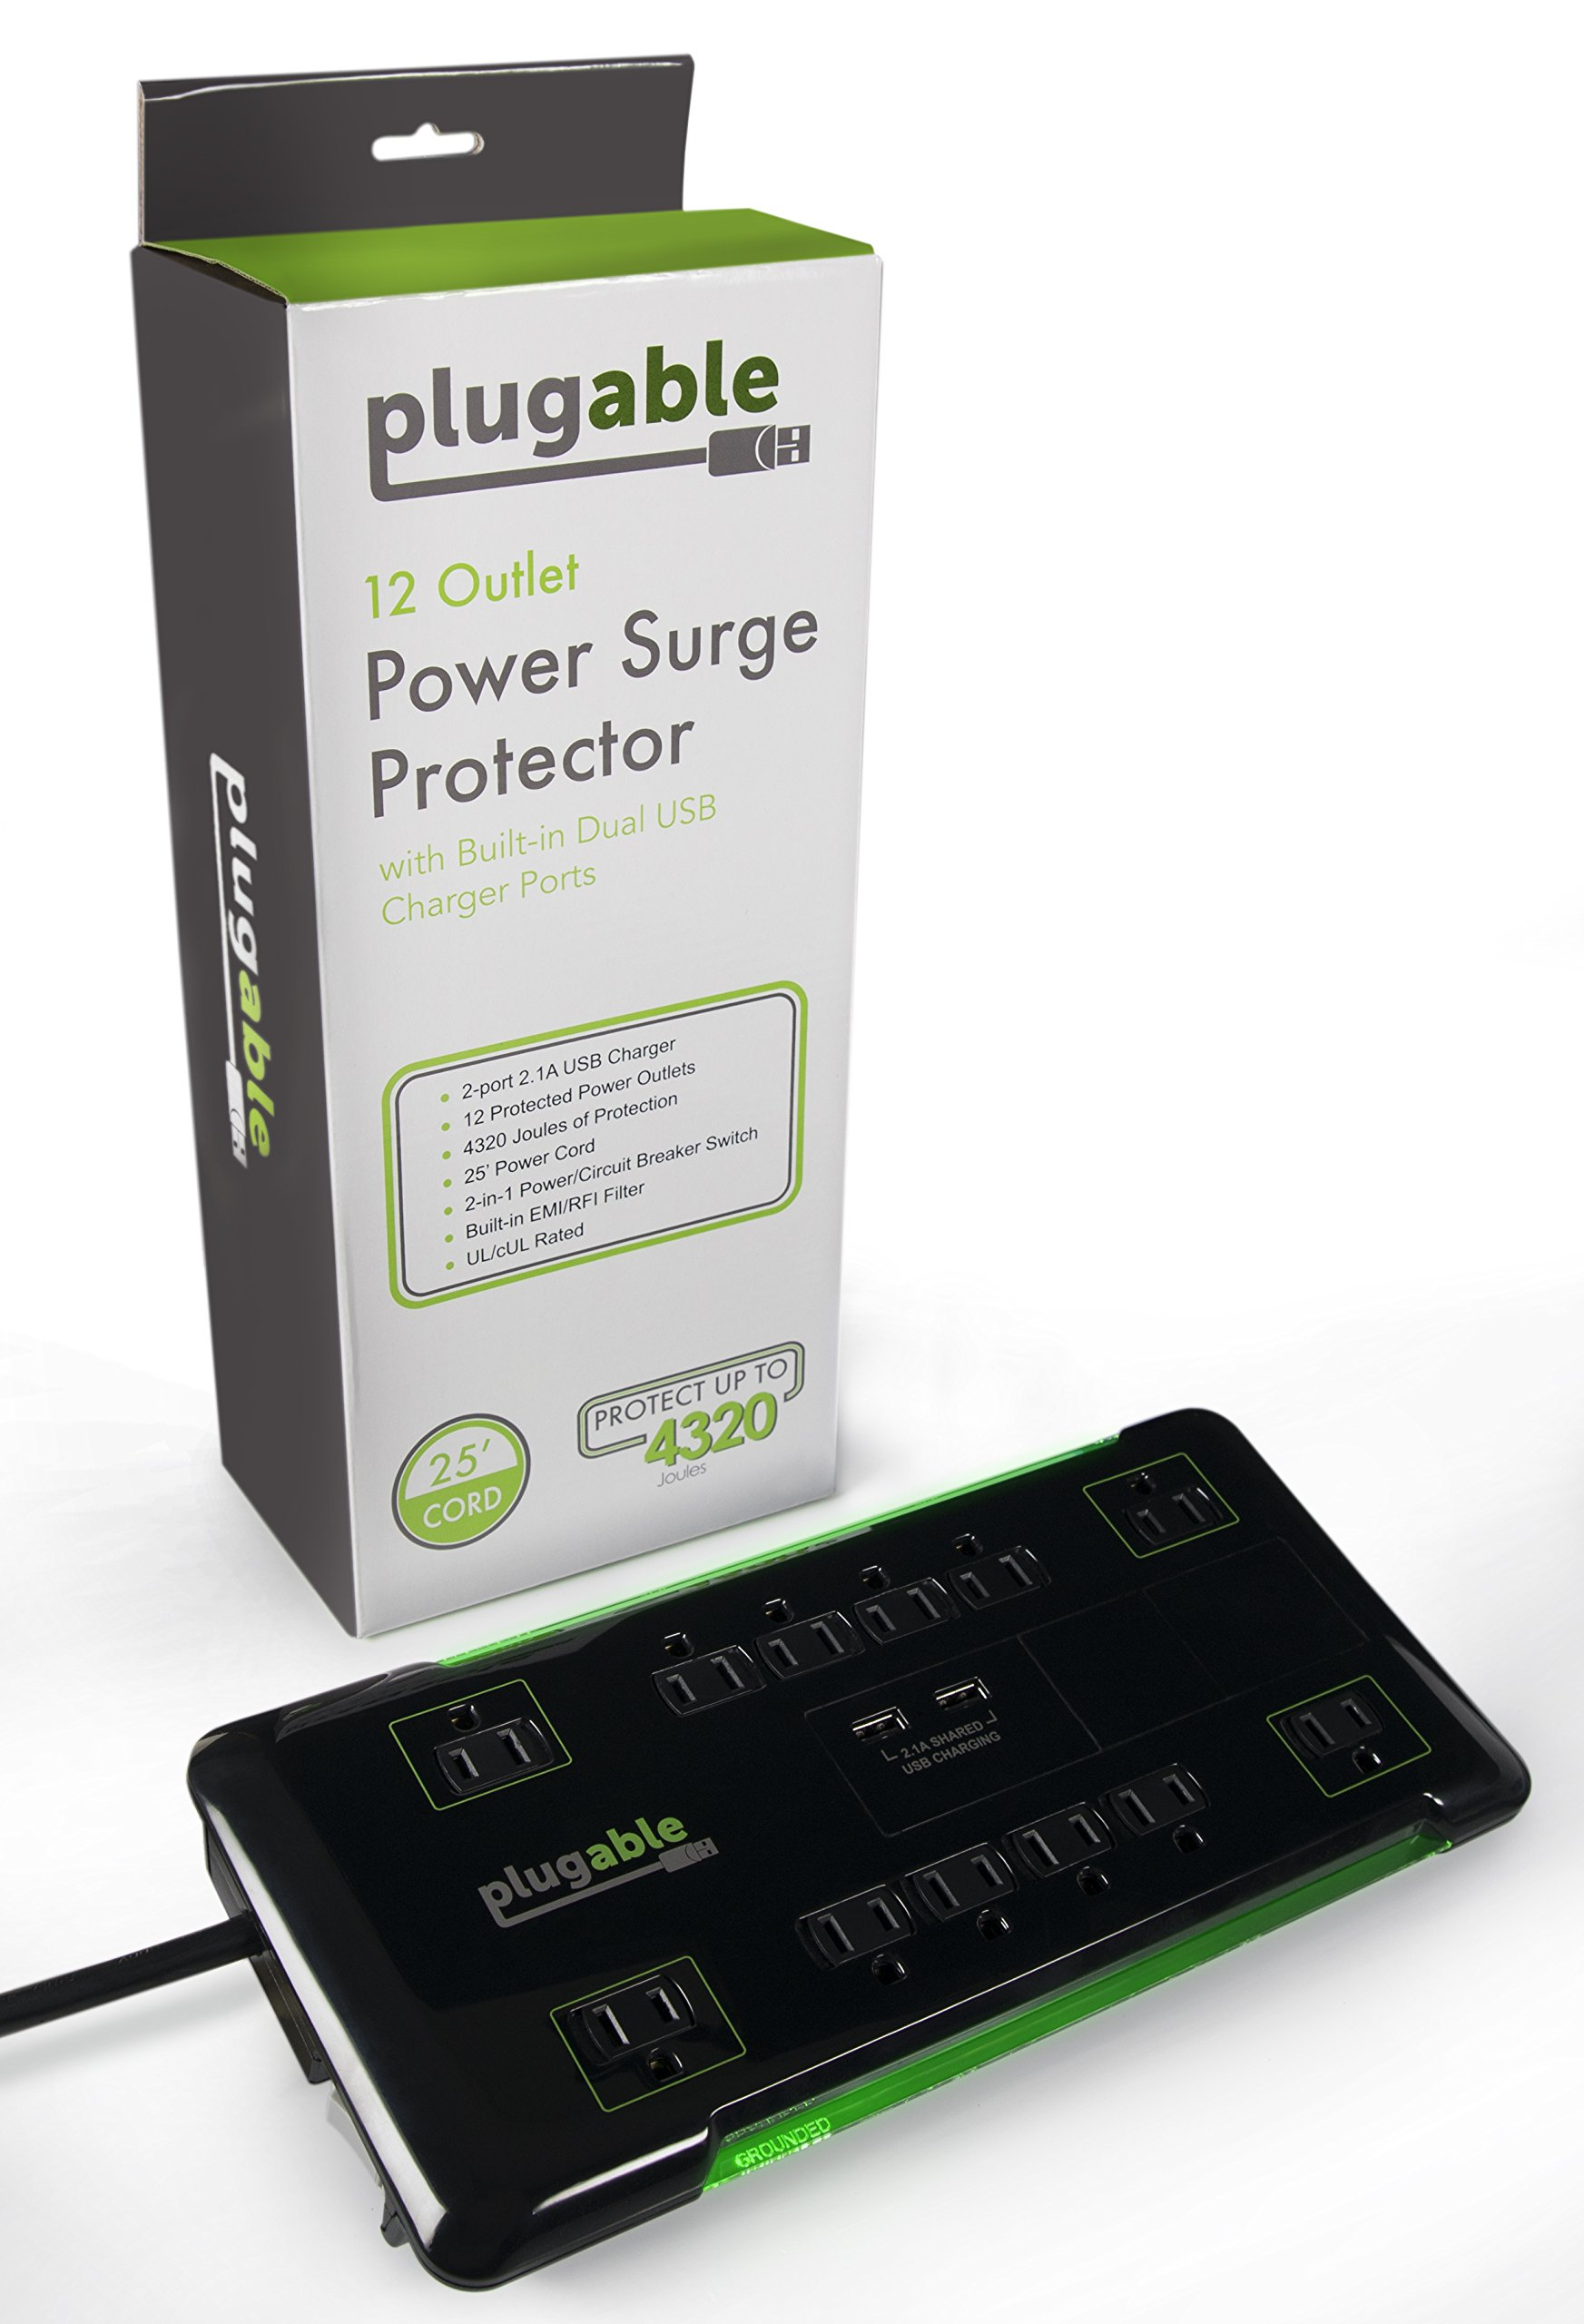 Plugable 12 AC Outlet Surge Protector - 25 foot power cord (Black) by Plugable (Image #5)